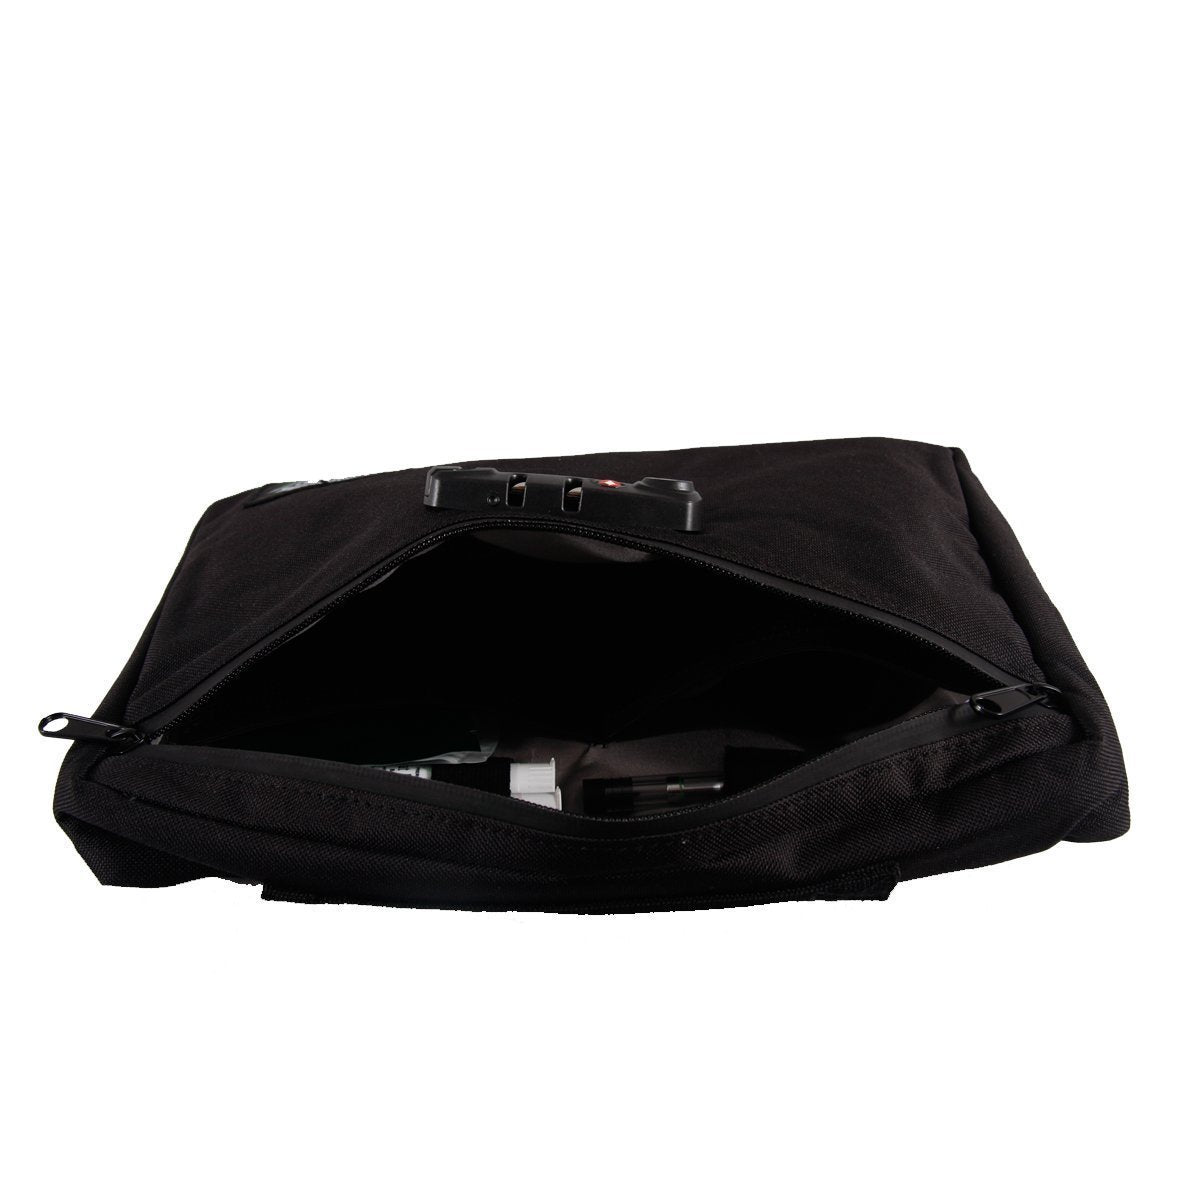 Grand Puff Stash Locker Deluxe Exit Bag